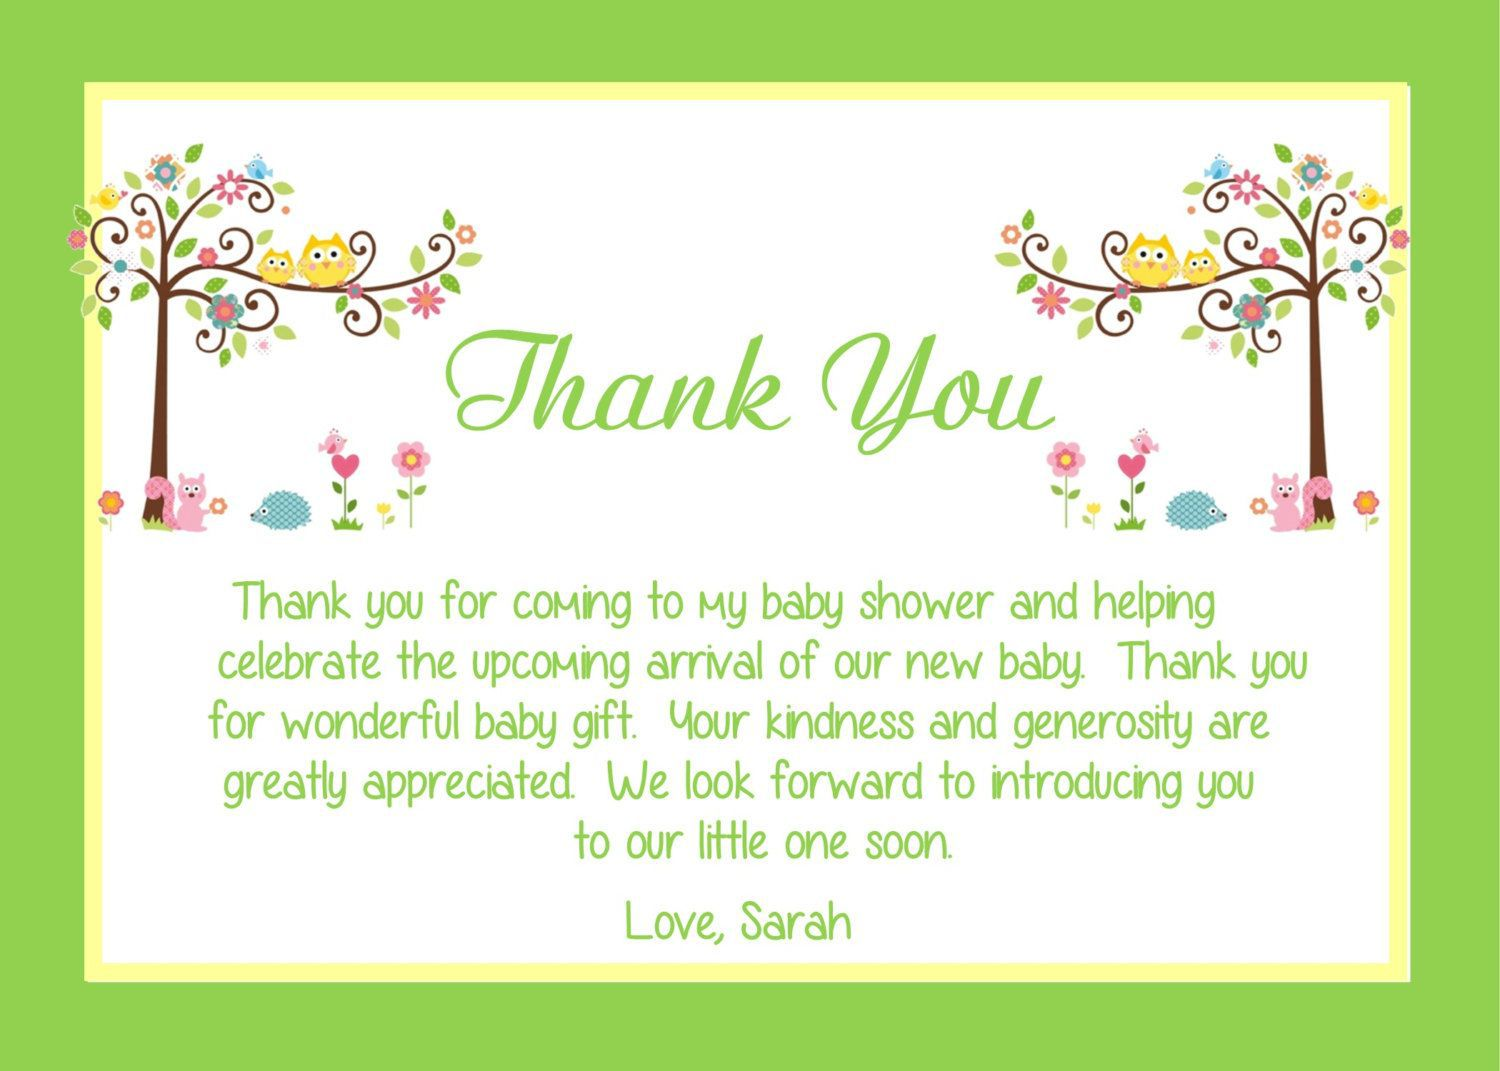 002 Fascinating Thank You Note Template For Baby Shower Gift High Def  Card Letter SampleFull